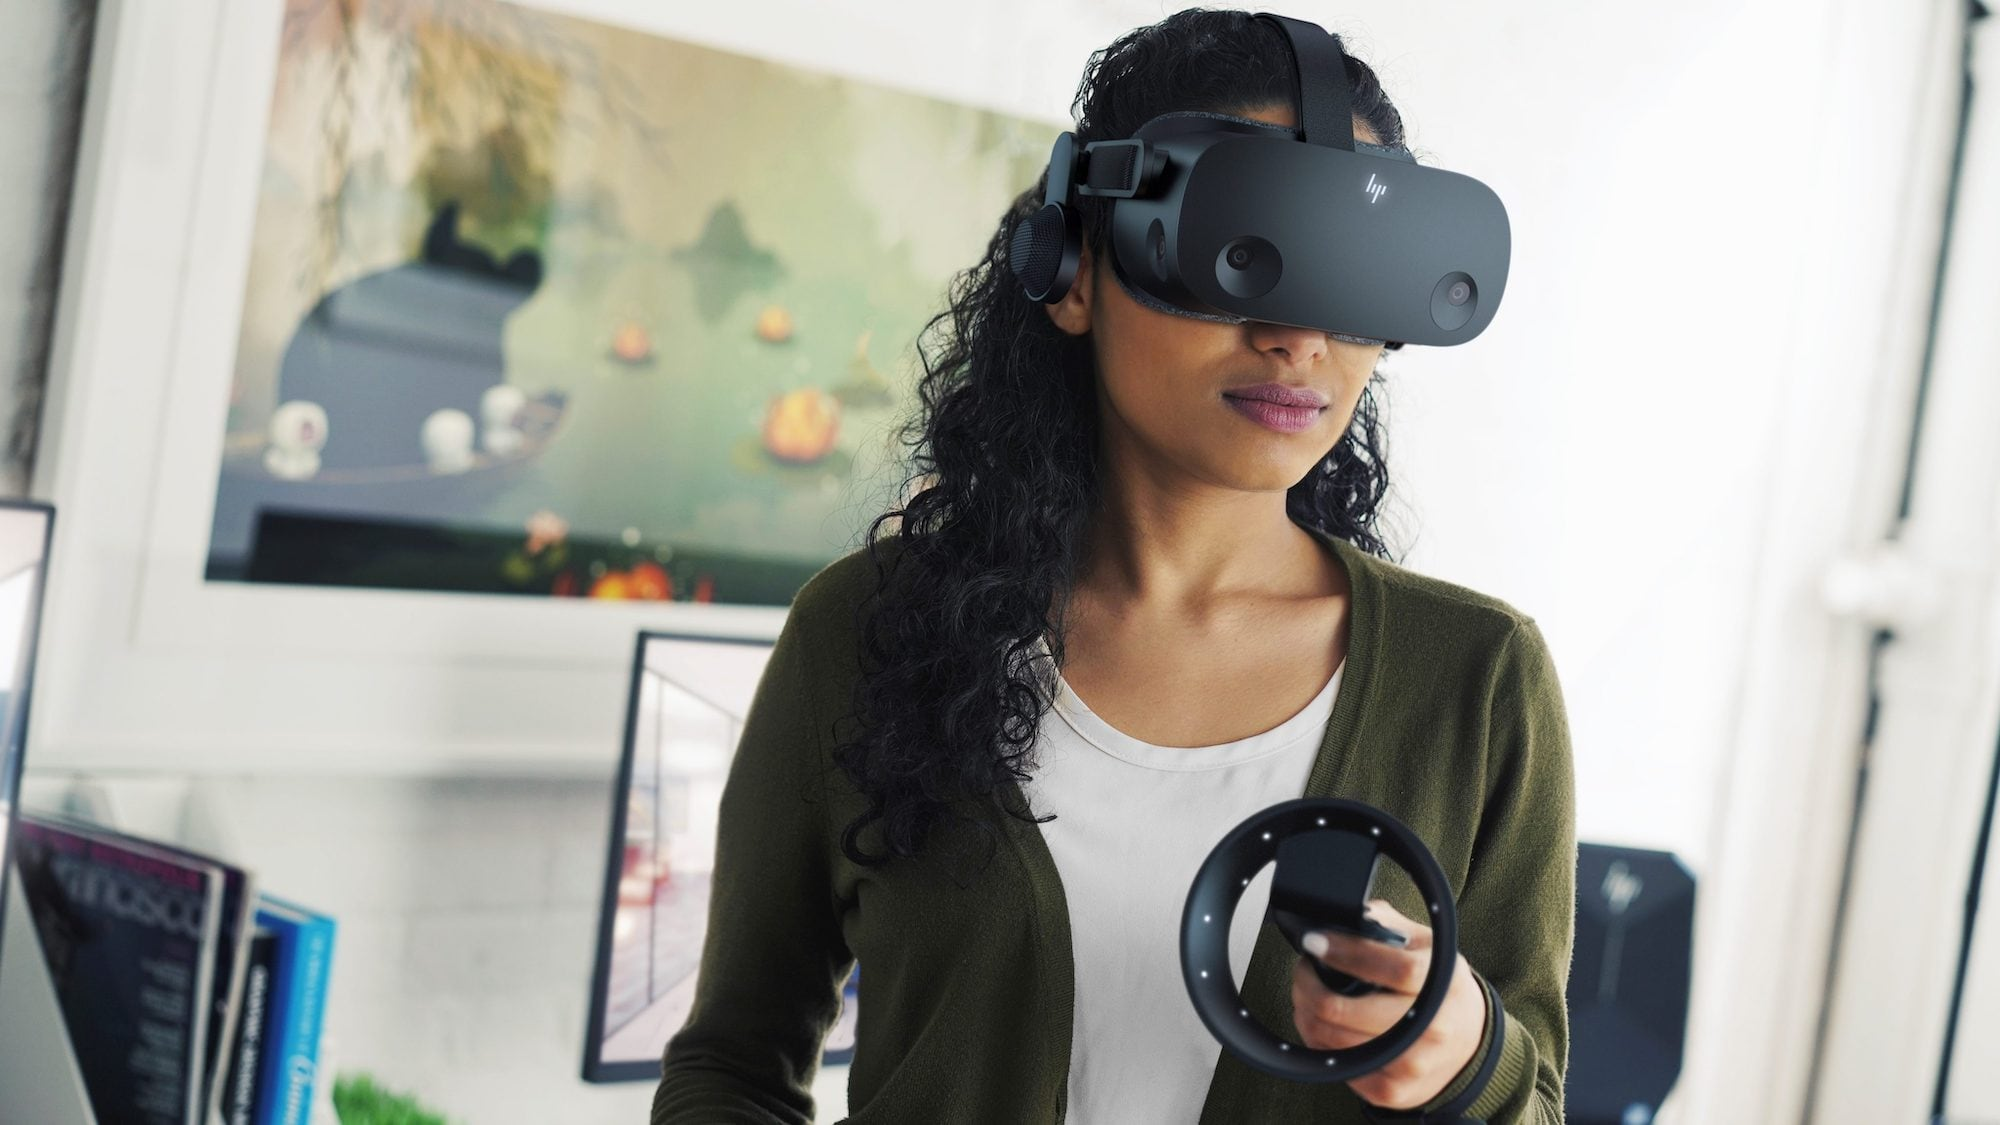 Top VR headset buyer's guide–HTC Vive Focus 3, Oculus Quest 2, and more